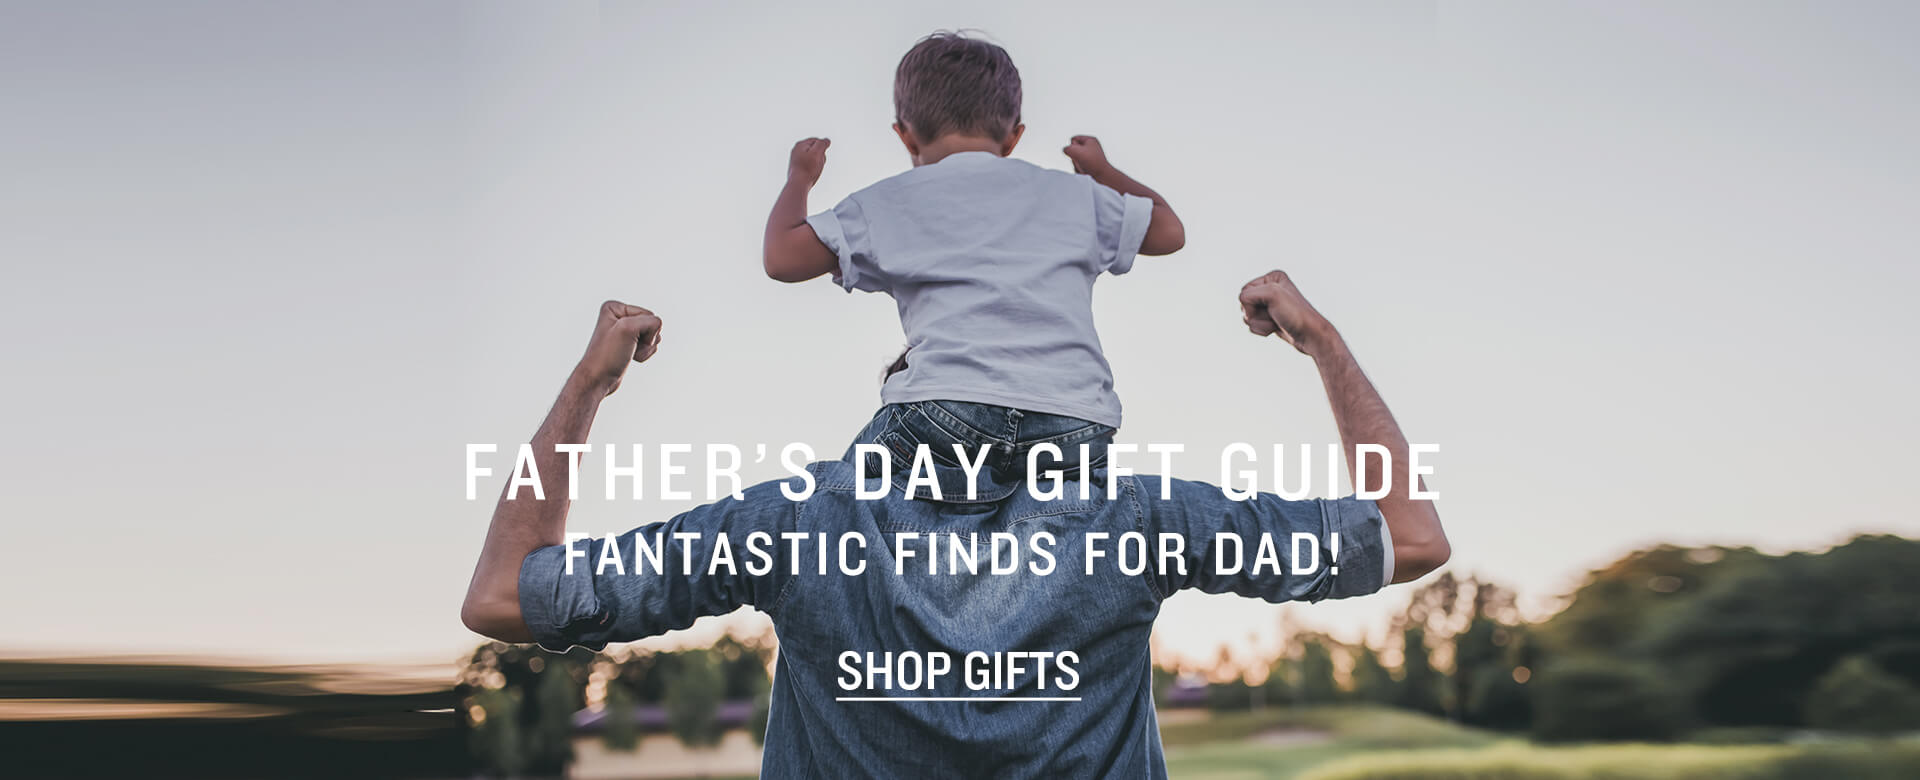 SWISSGEAR Father's Day Gift Guide